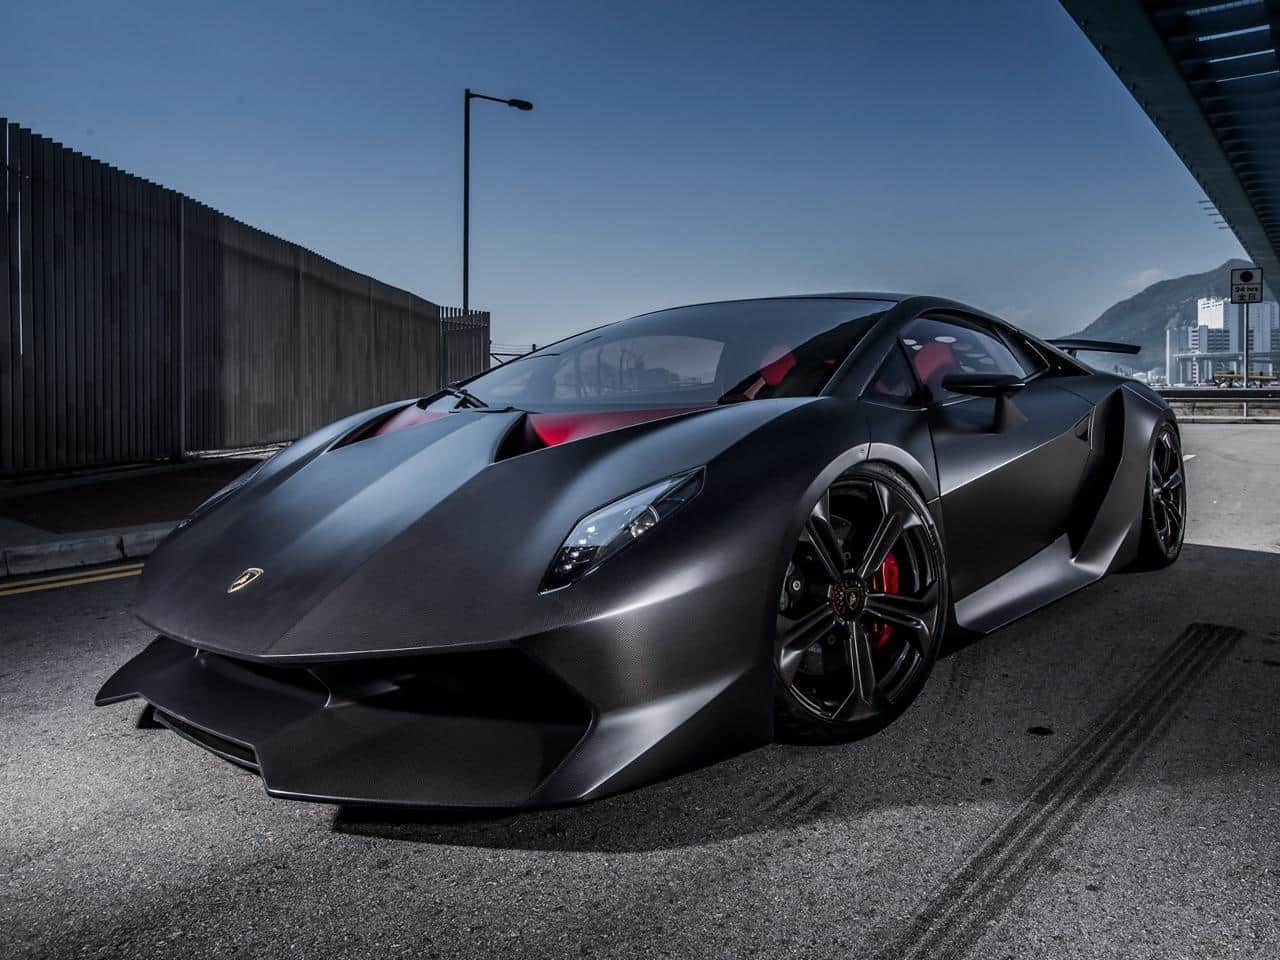 Lamborghini Sesto Elemento Will Enter Production Soon